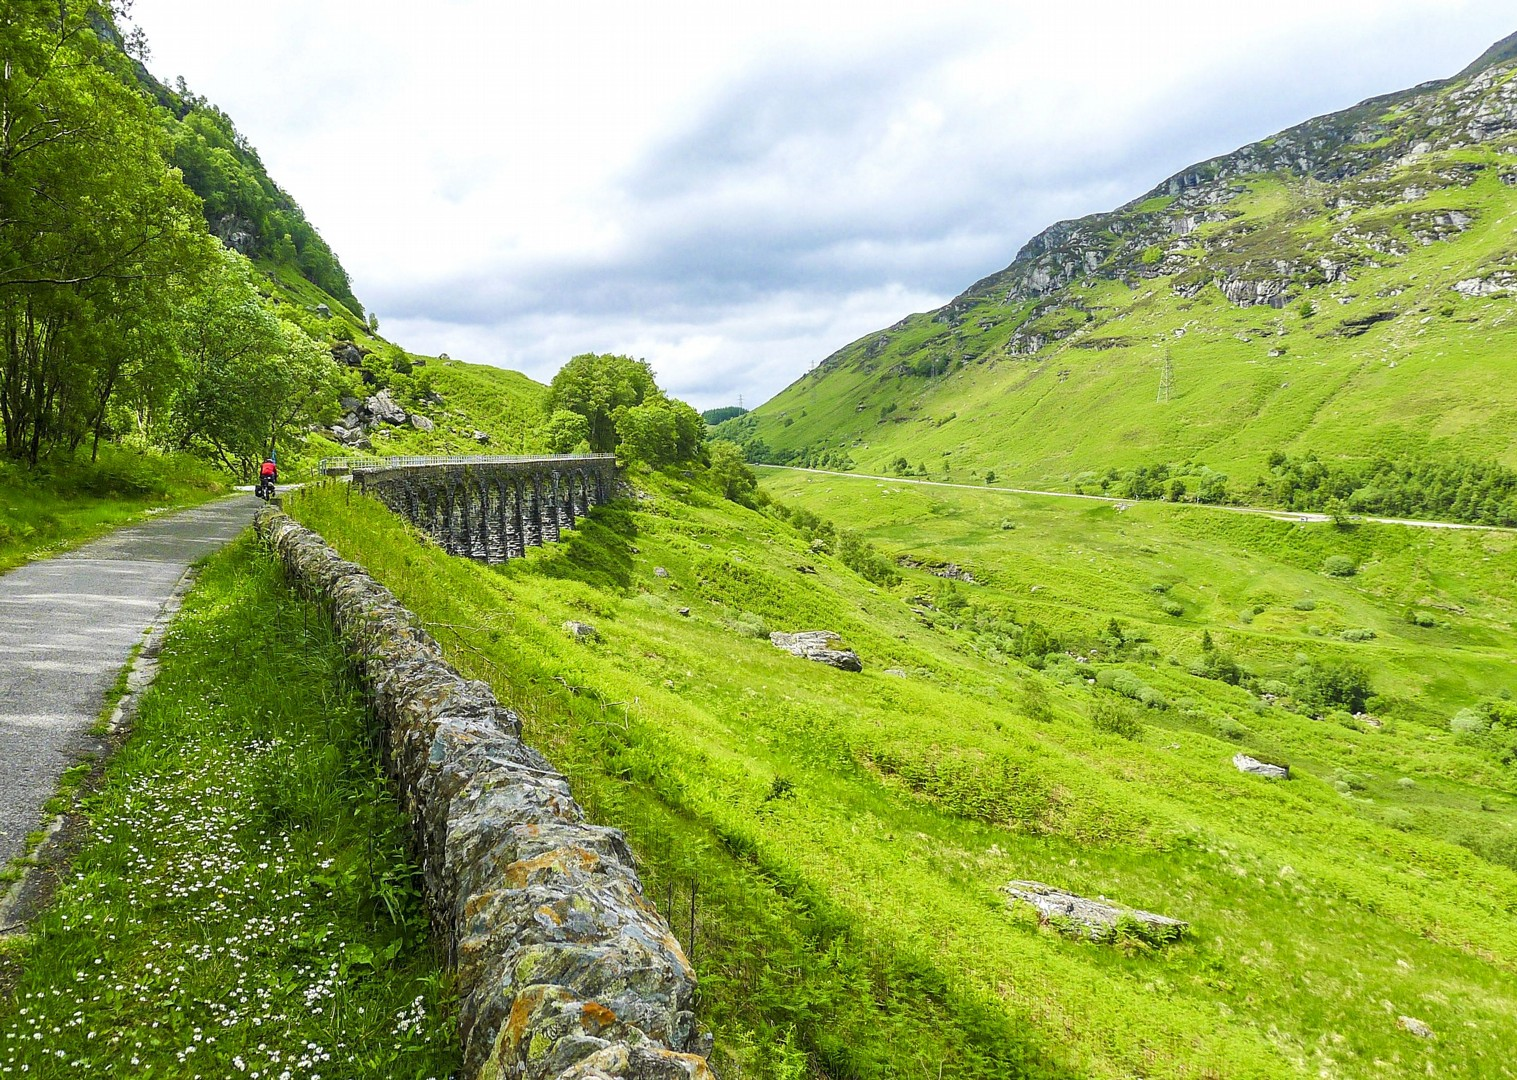 cycle-paths-uk-scotland-lochs-and-glens-countryside-tour-bike.jpg - UK - Scotland - Lochs and Glens - Self-Guided Family Cycling Holiday - Family Cycling